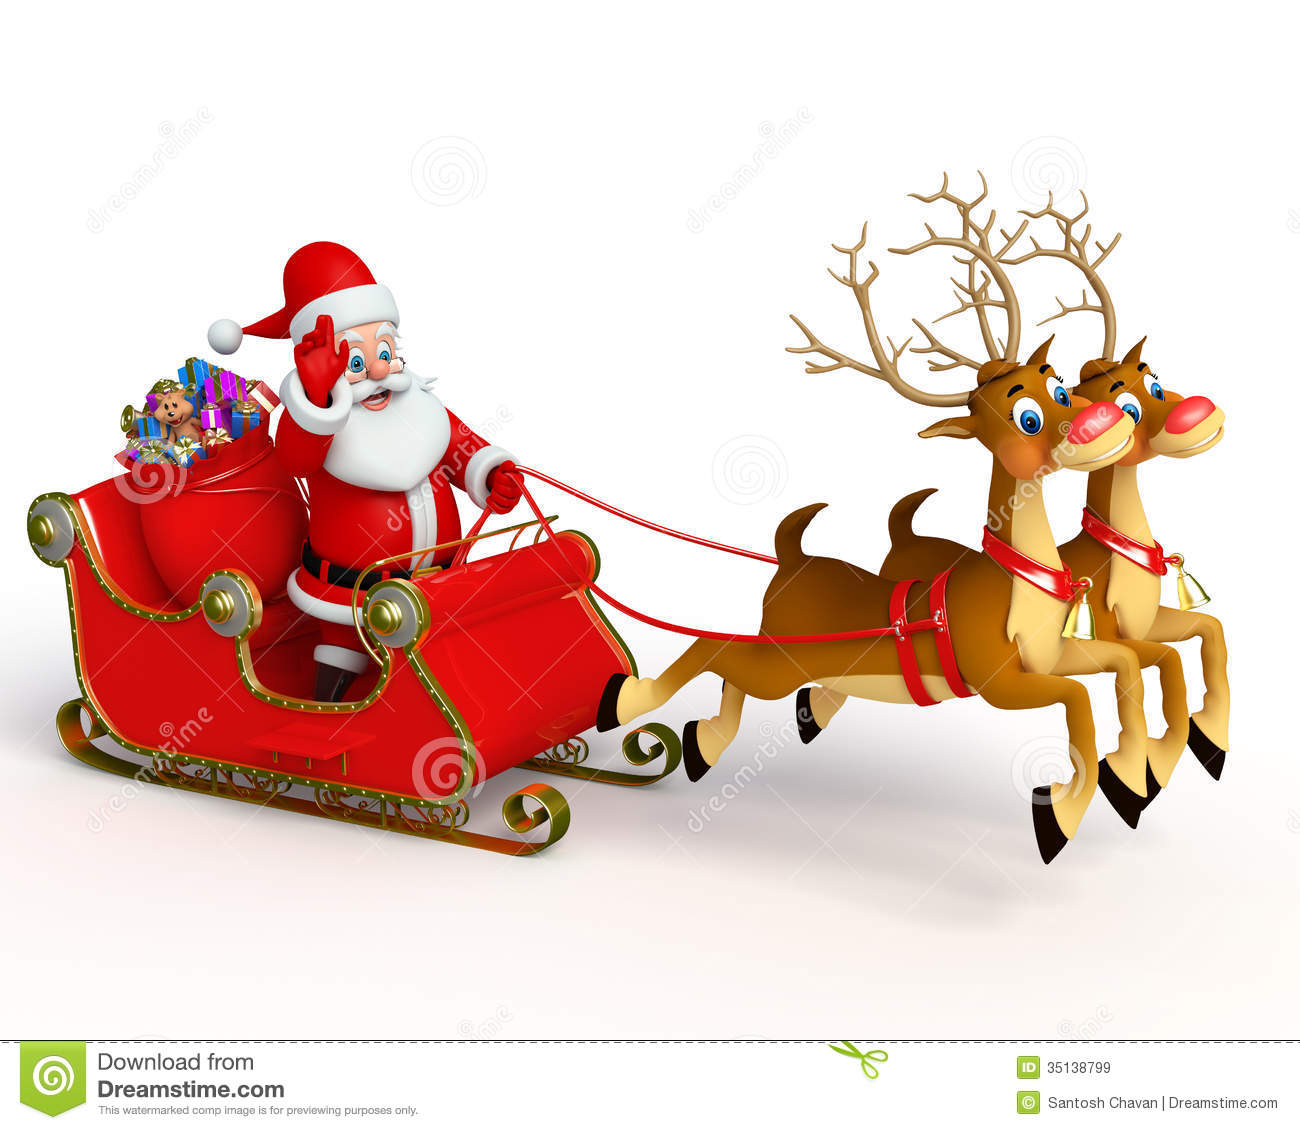 santa claus with his sleigh stock illustration image 35138799 santa sleigh clipart free download santa sleigh clip art no background